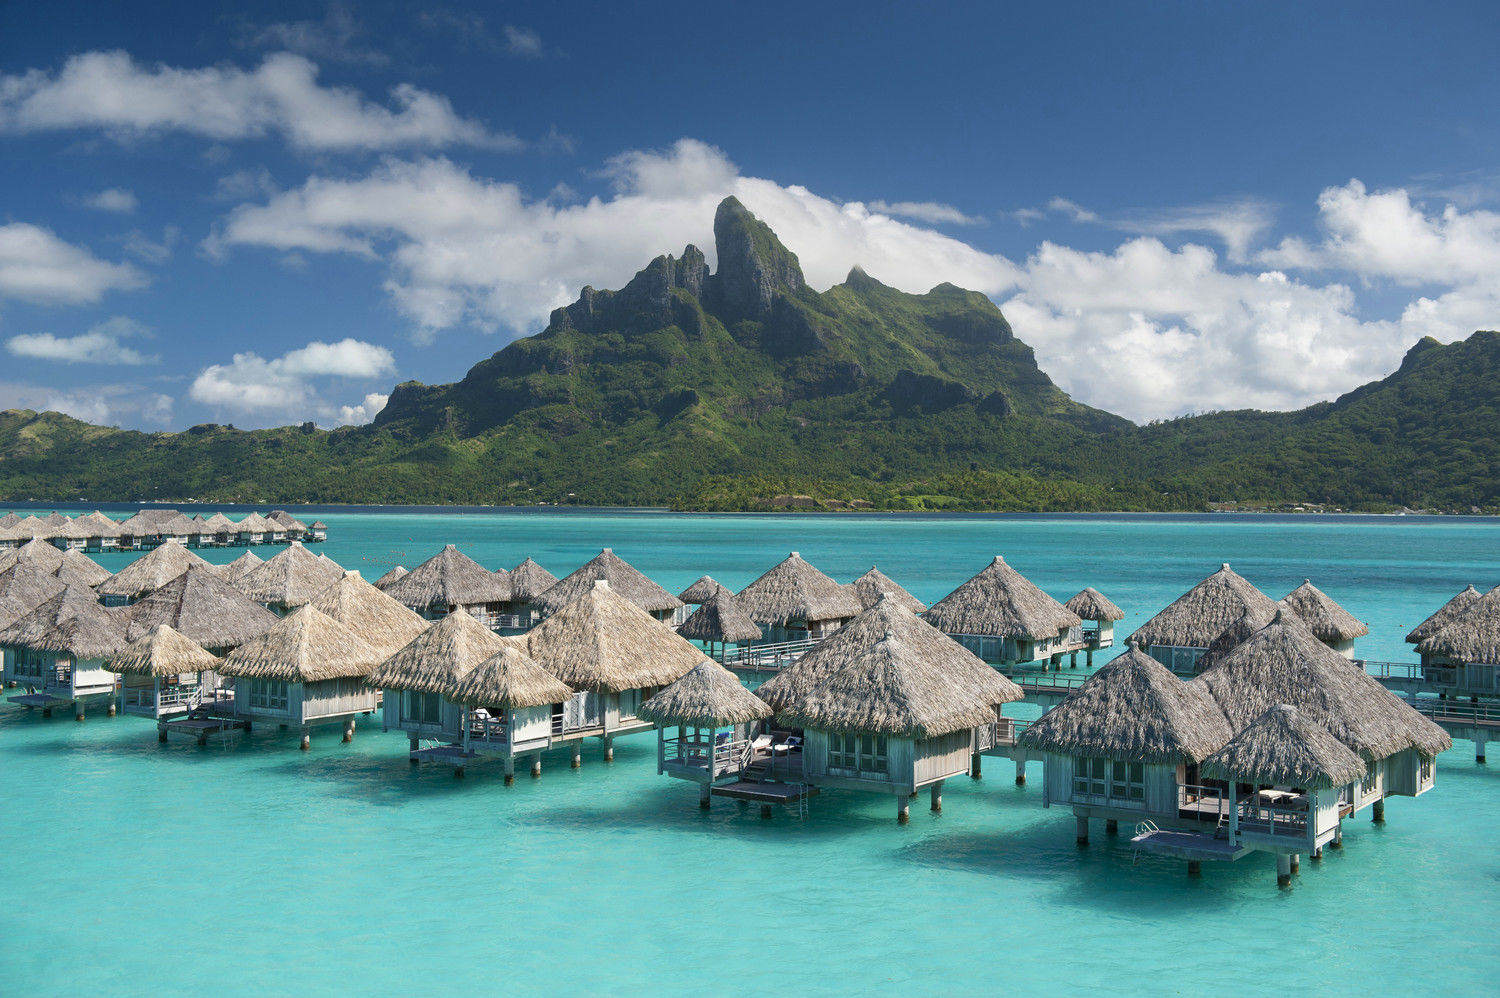 St. Regis Bora Bora Resort 2 dicas Viaje Global